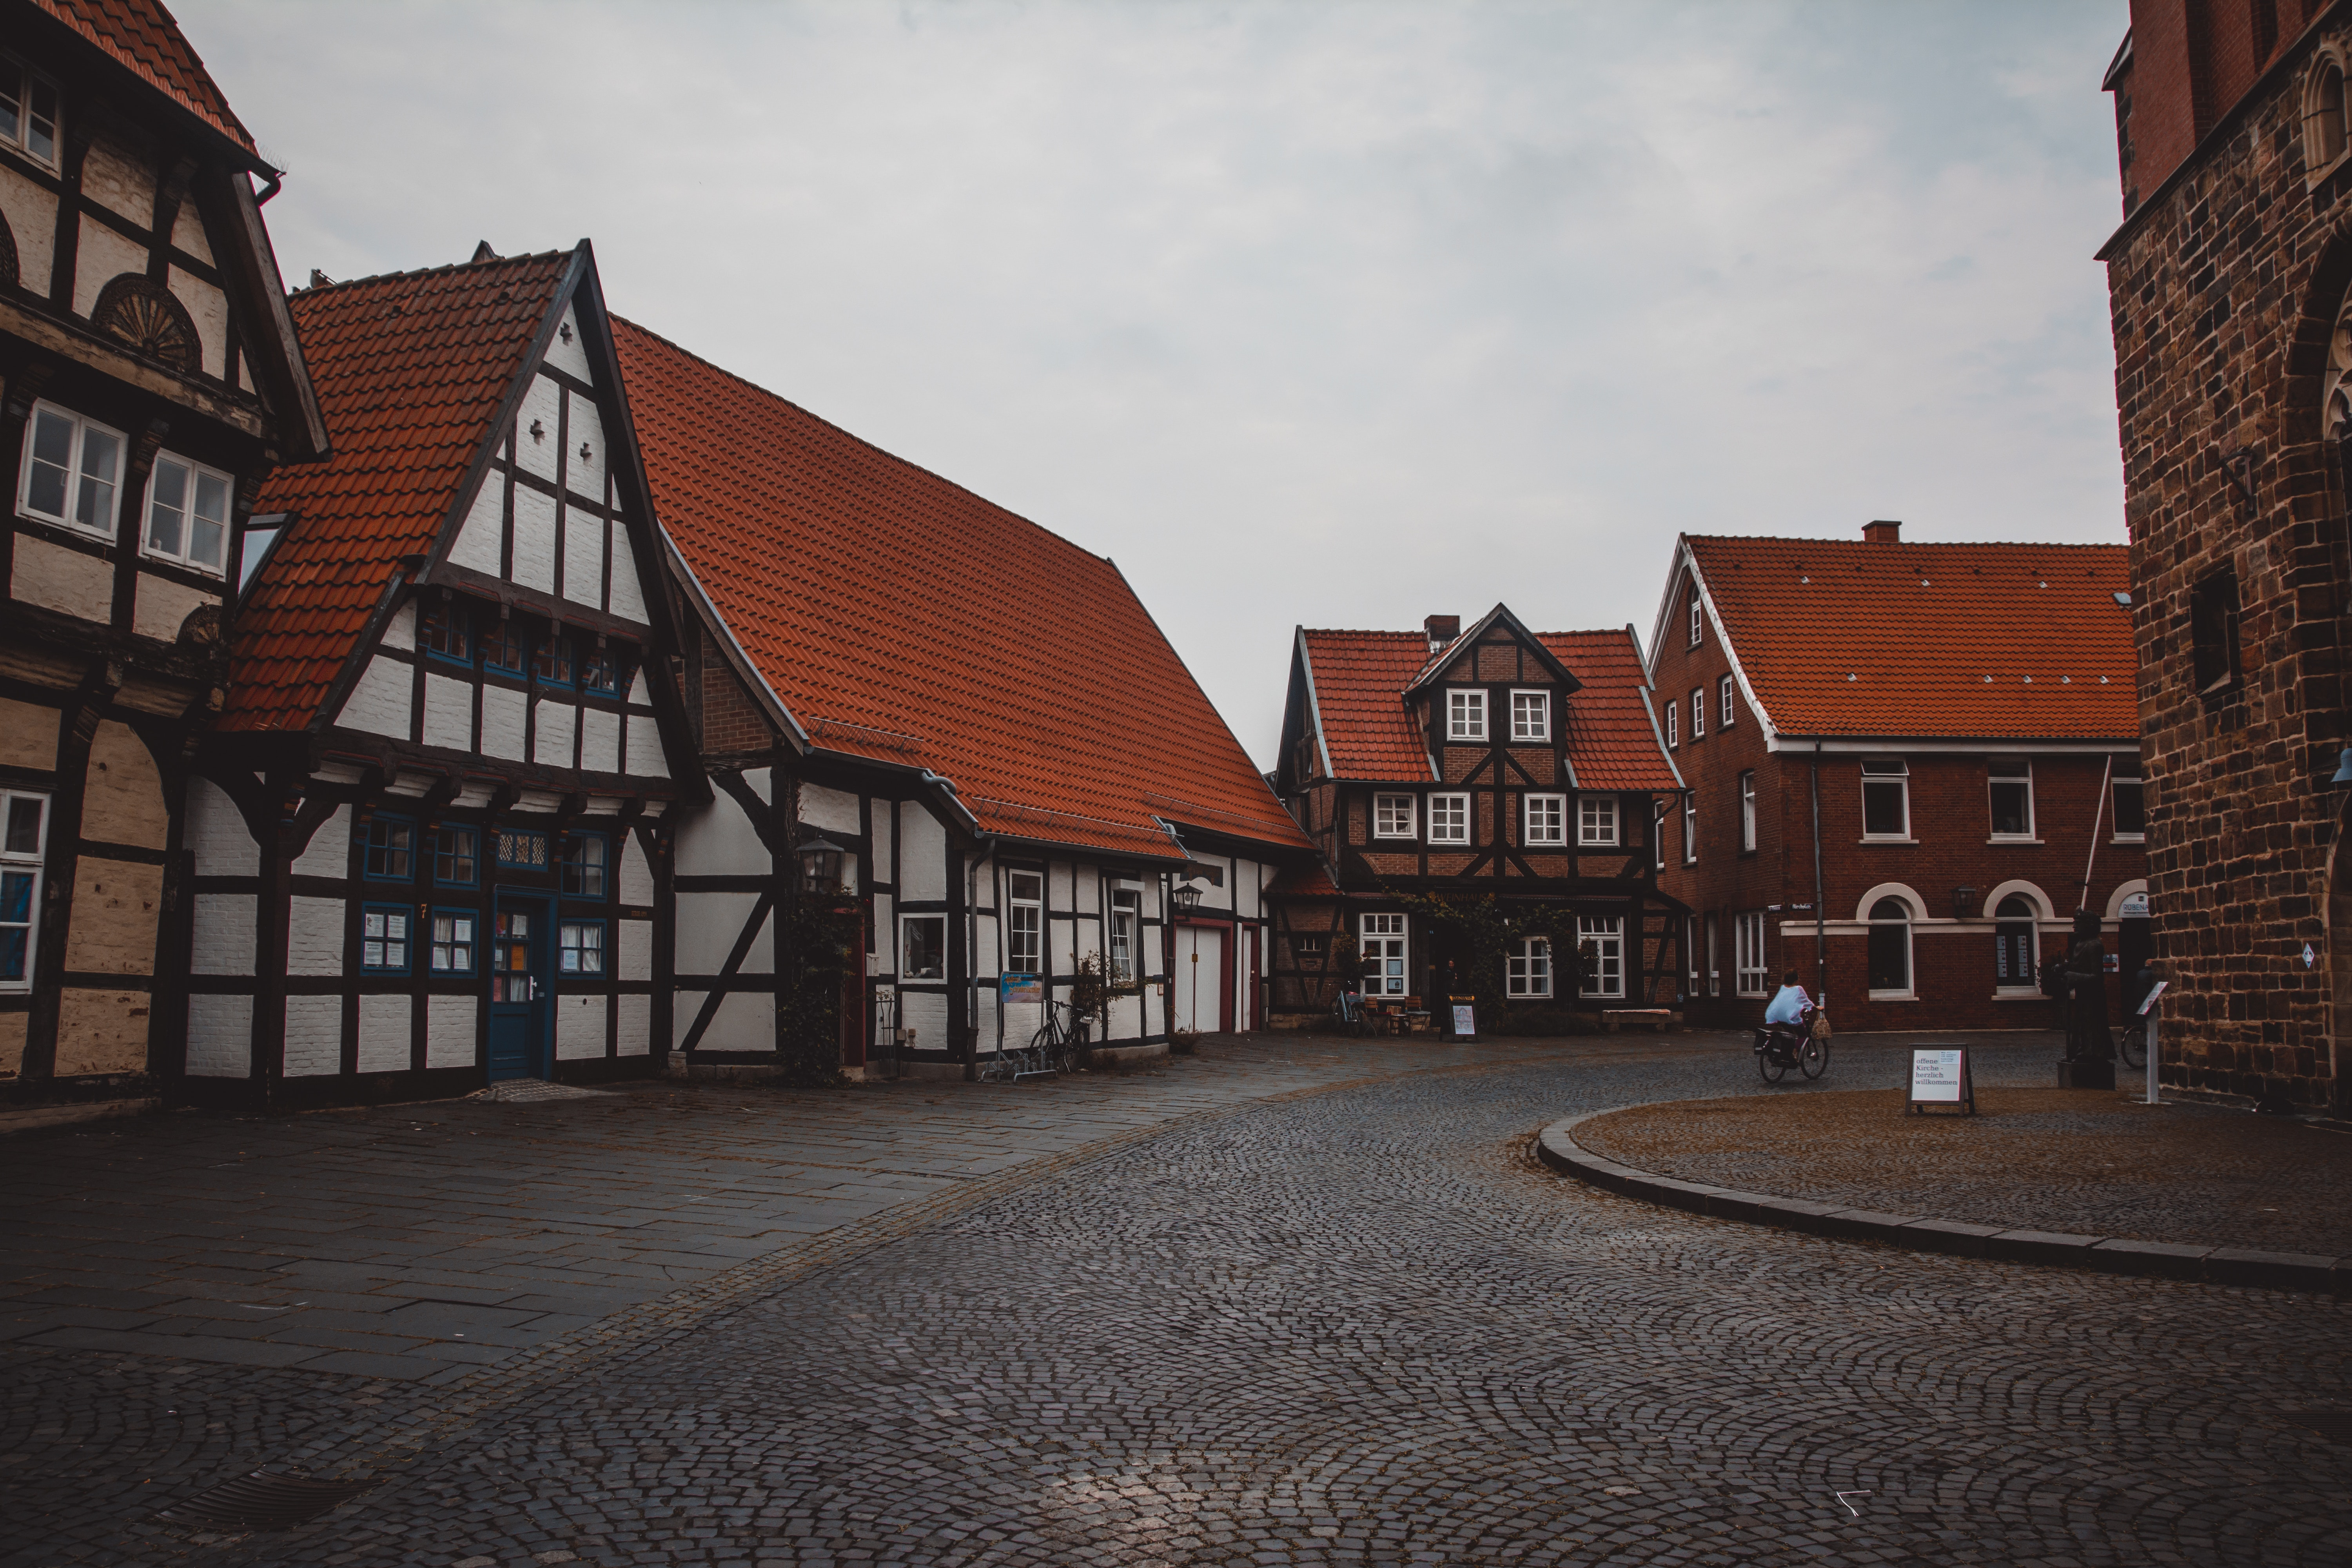 Brown and white wooden houses photo